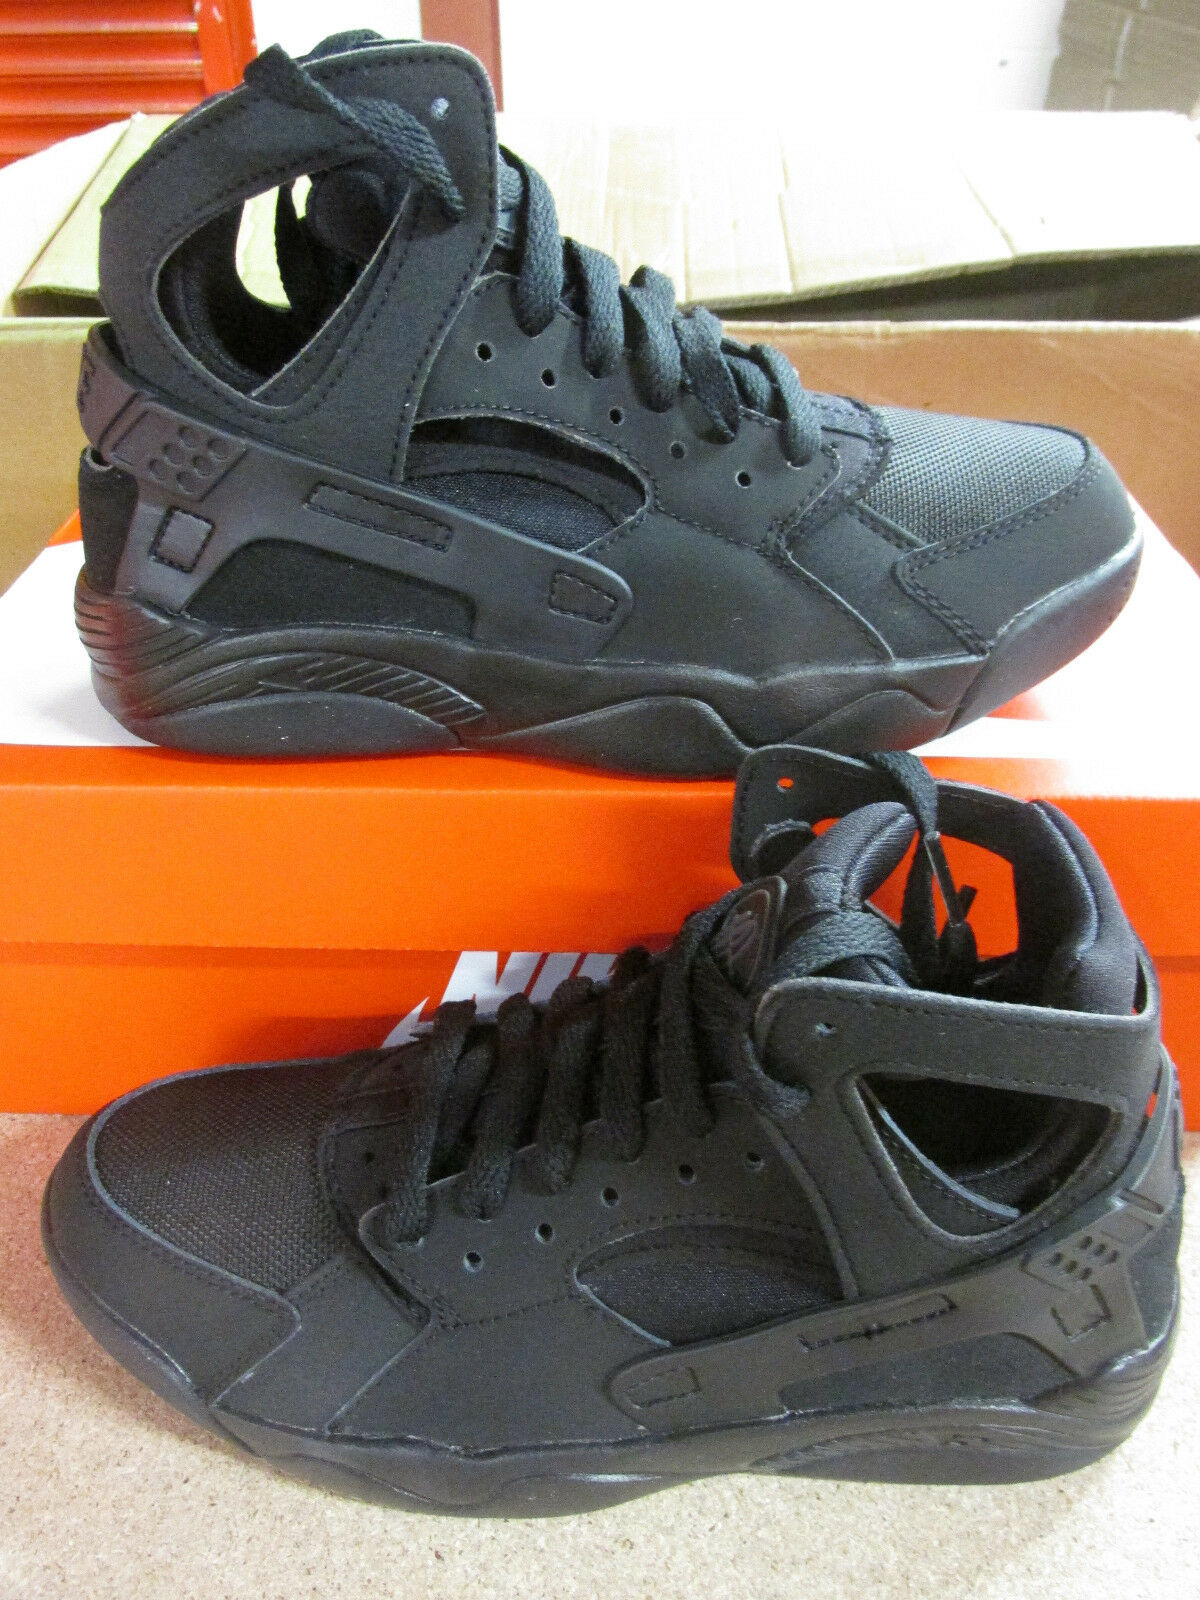 Nike flight huarache (GS) hi top trainers 705281 009 sneakers shoes